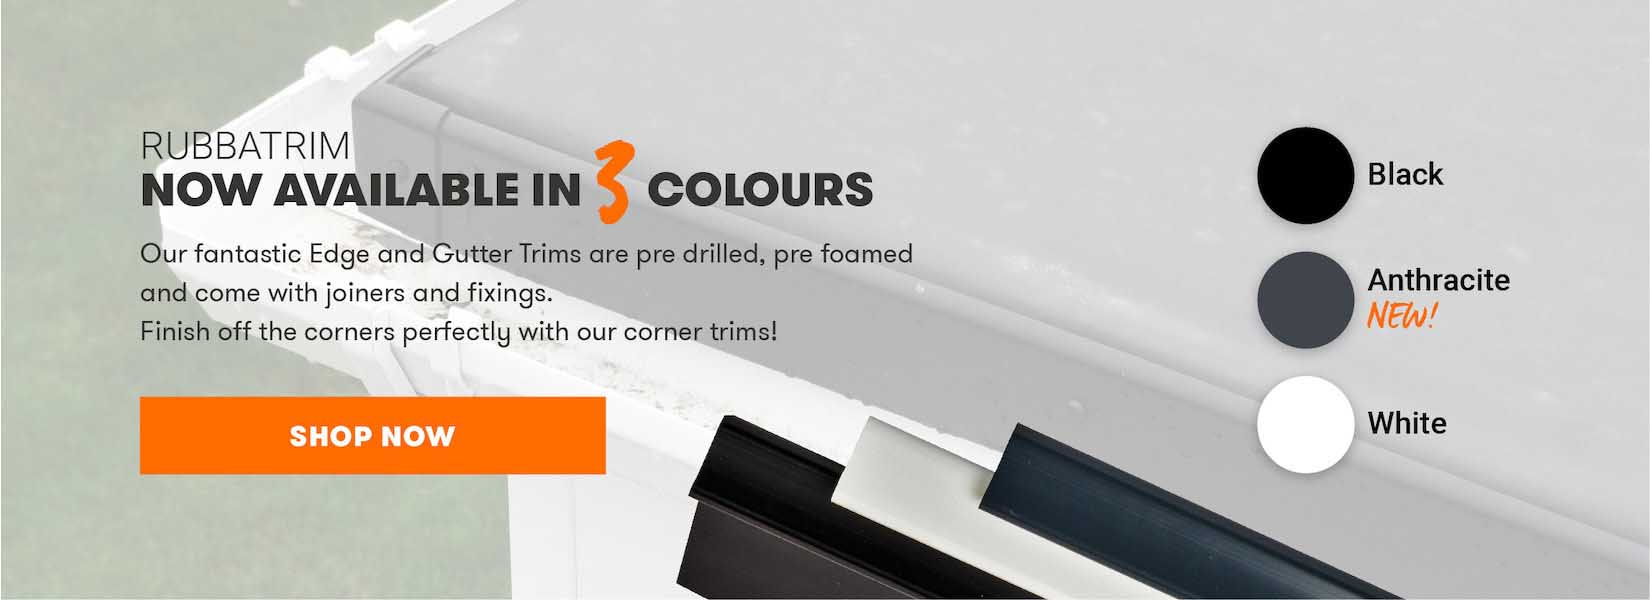 RubbaTrim, Available in Black, White and Anthracite